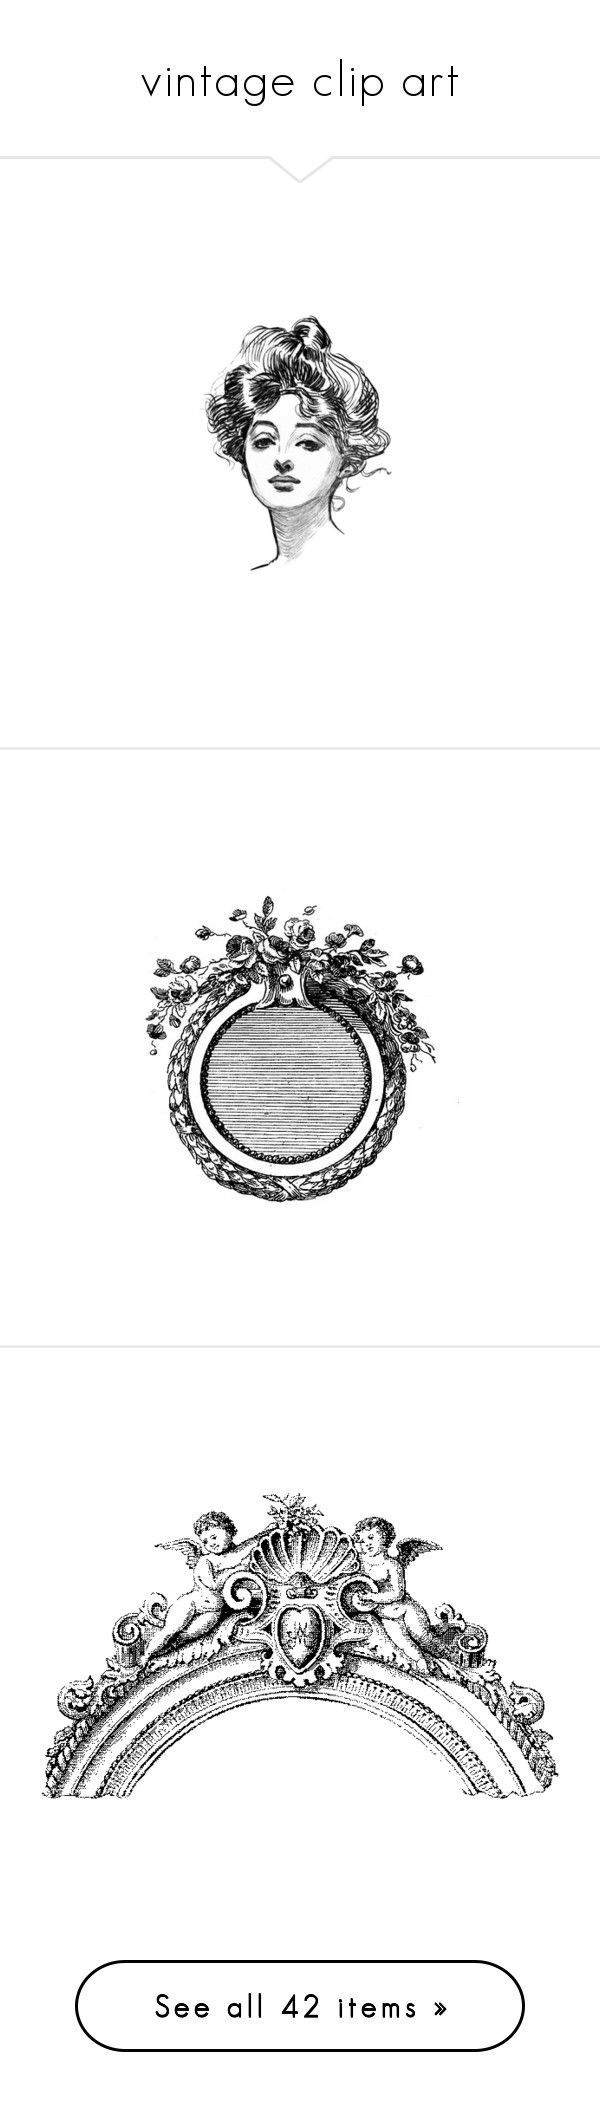 """""""vintage clip art"""" by romantic-salvage ❤ liked on Polyvore featuring backgrounds, faces, fillers, illustrations, people, frames, circles, borders, decor and picture frame"""